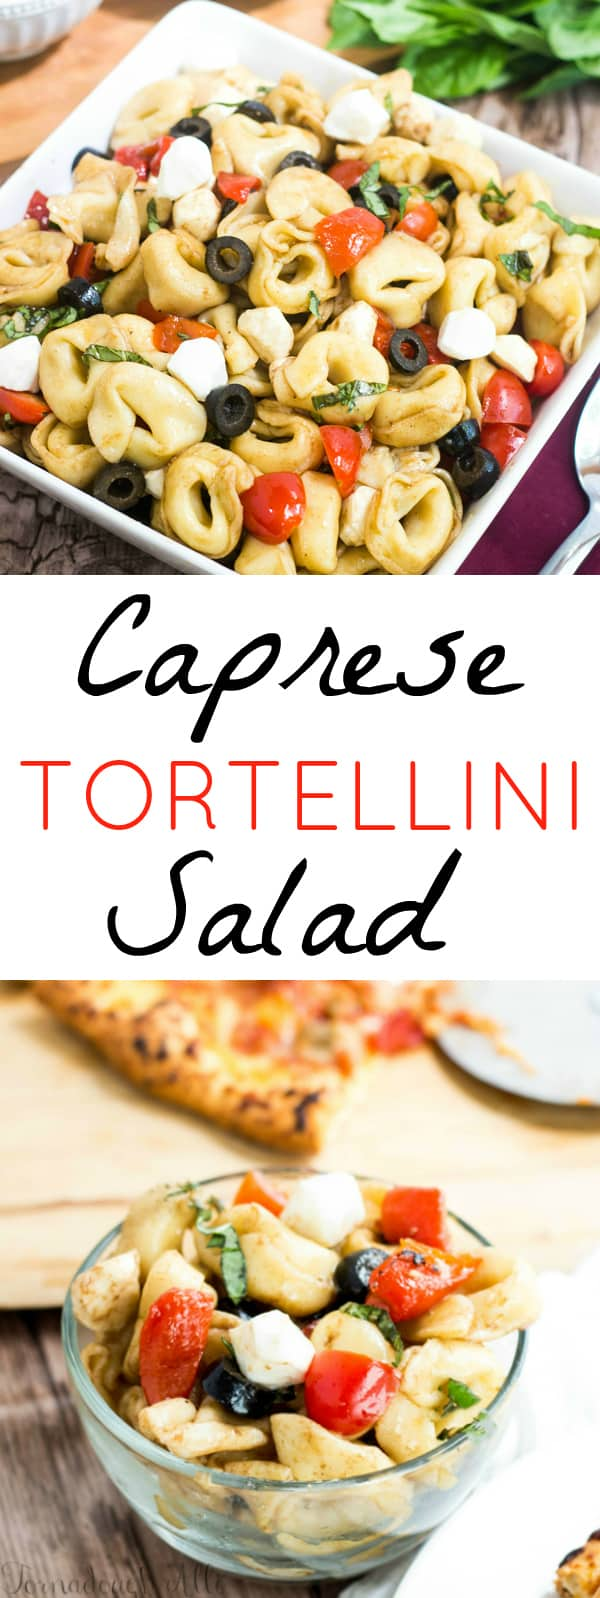 Caprese Tortellini Salad Collage